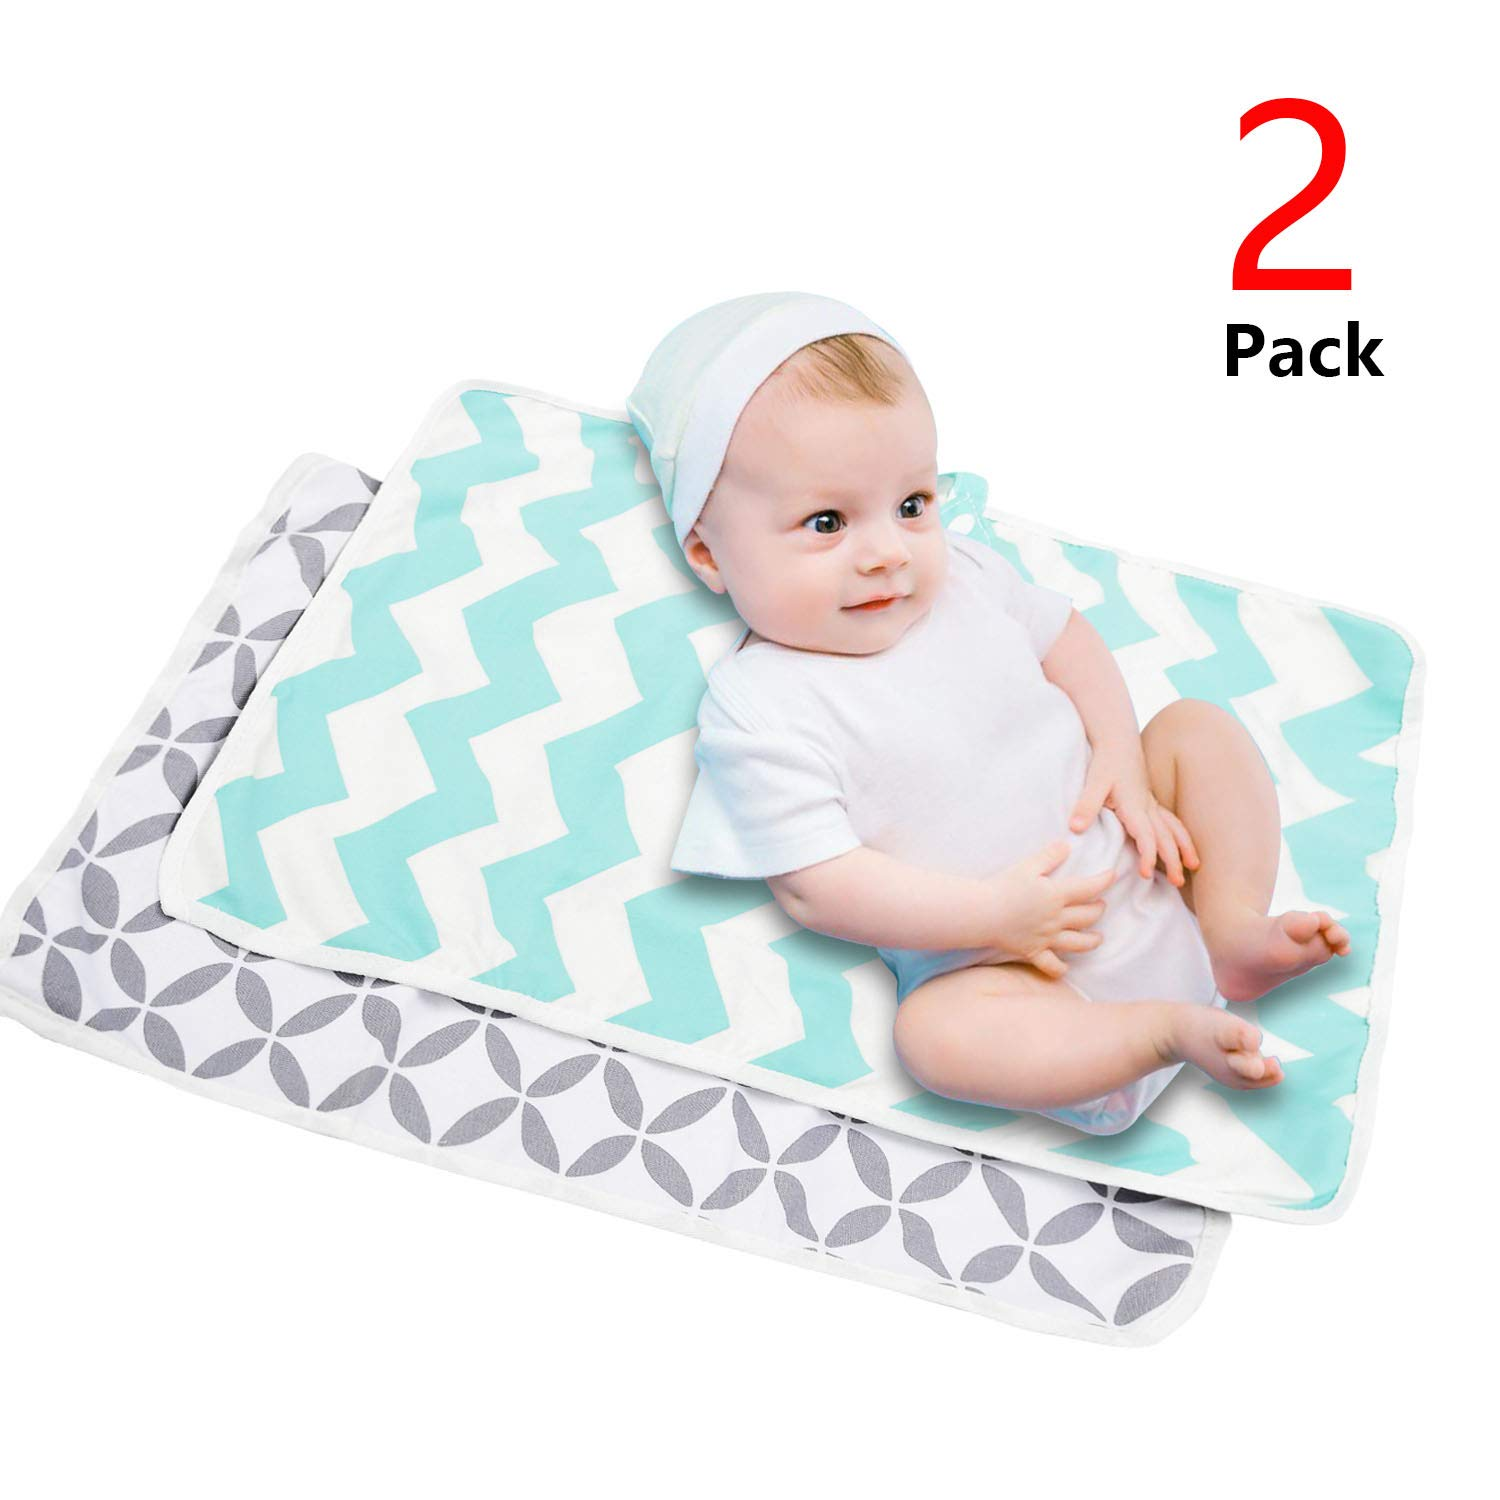 Diaper Changing Pad, Waterproof Pad Baby Portable Changing Mat Travel Mat Station for Home,Travel & Outside Idefair- 2 Pack by AIFUSI